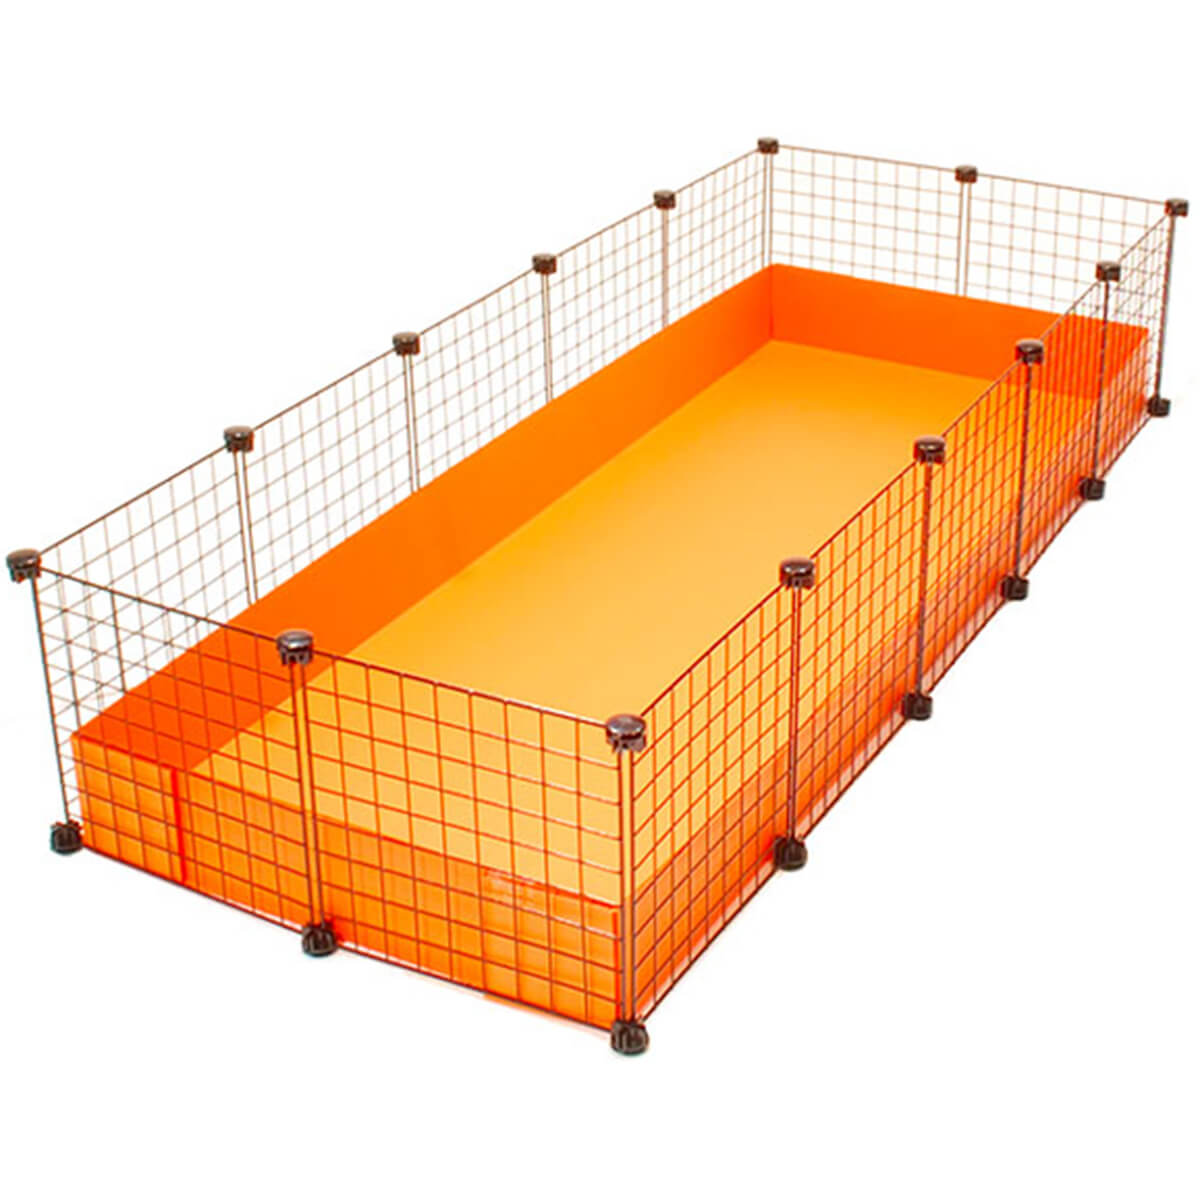 Xl 2x5 grids cage clearance high back wall cages for Guinea pig cages for two